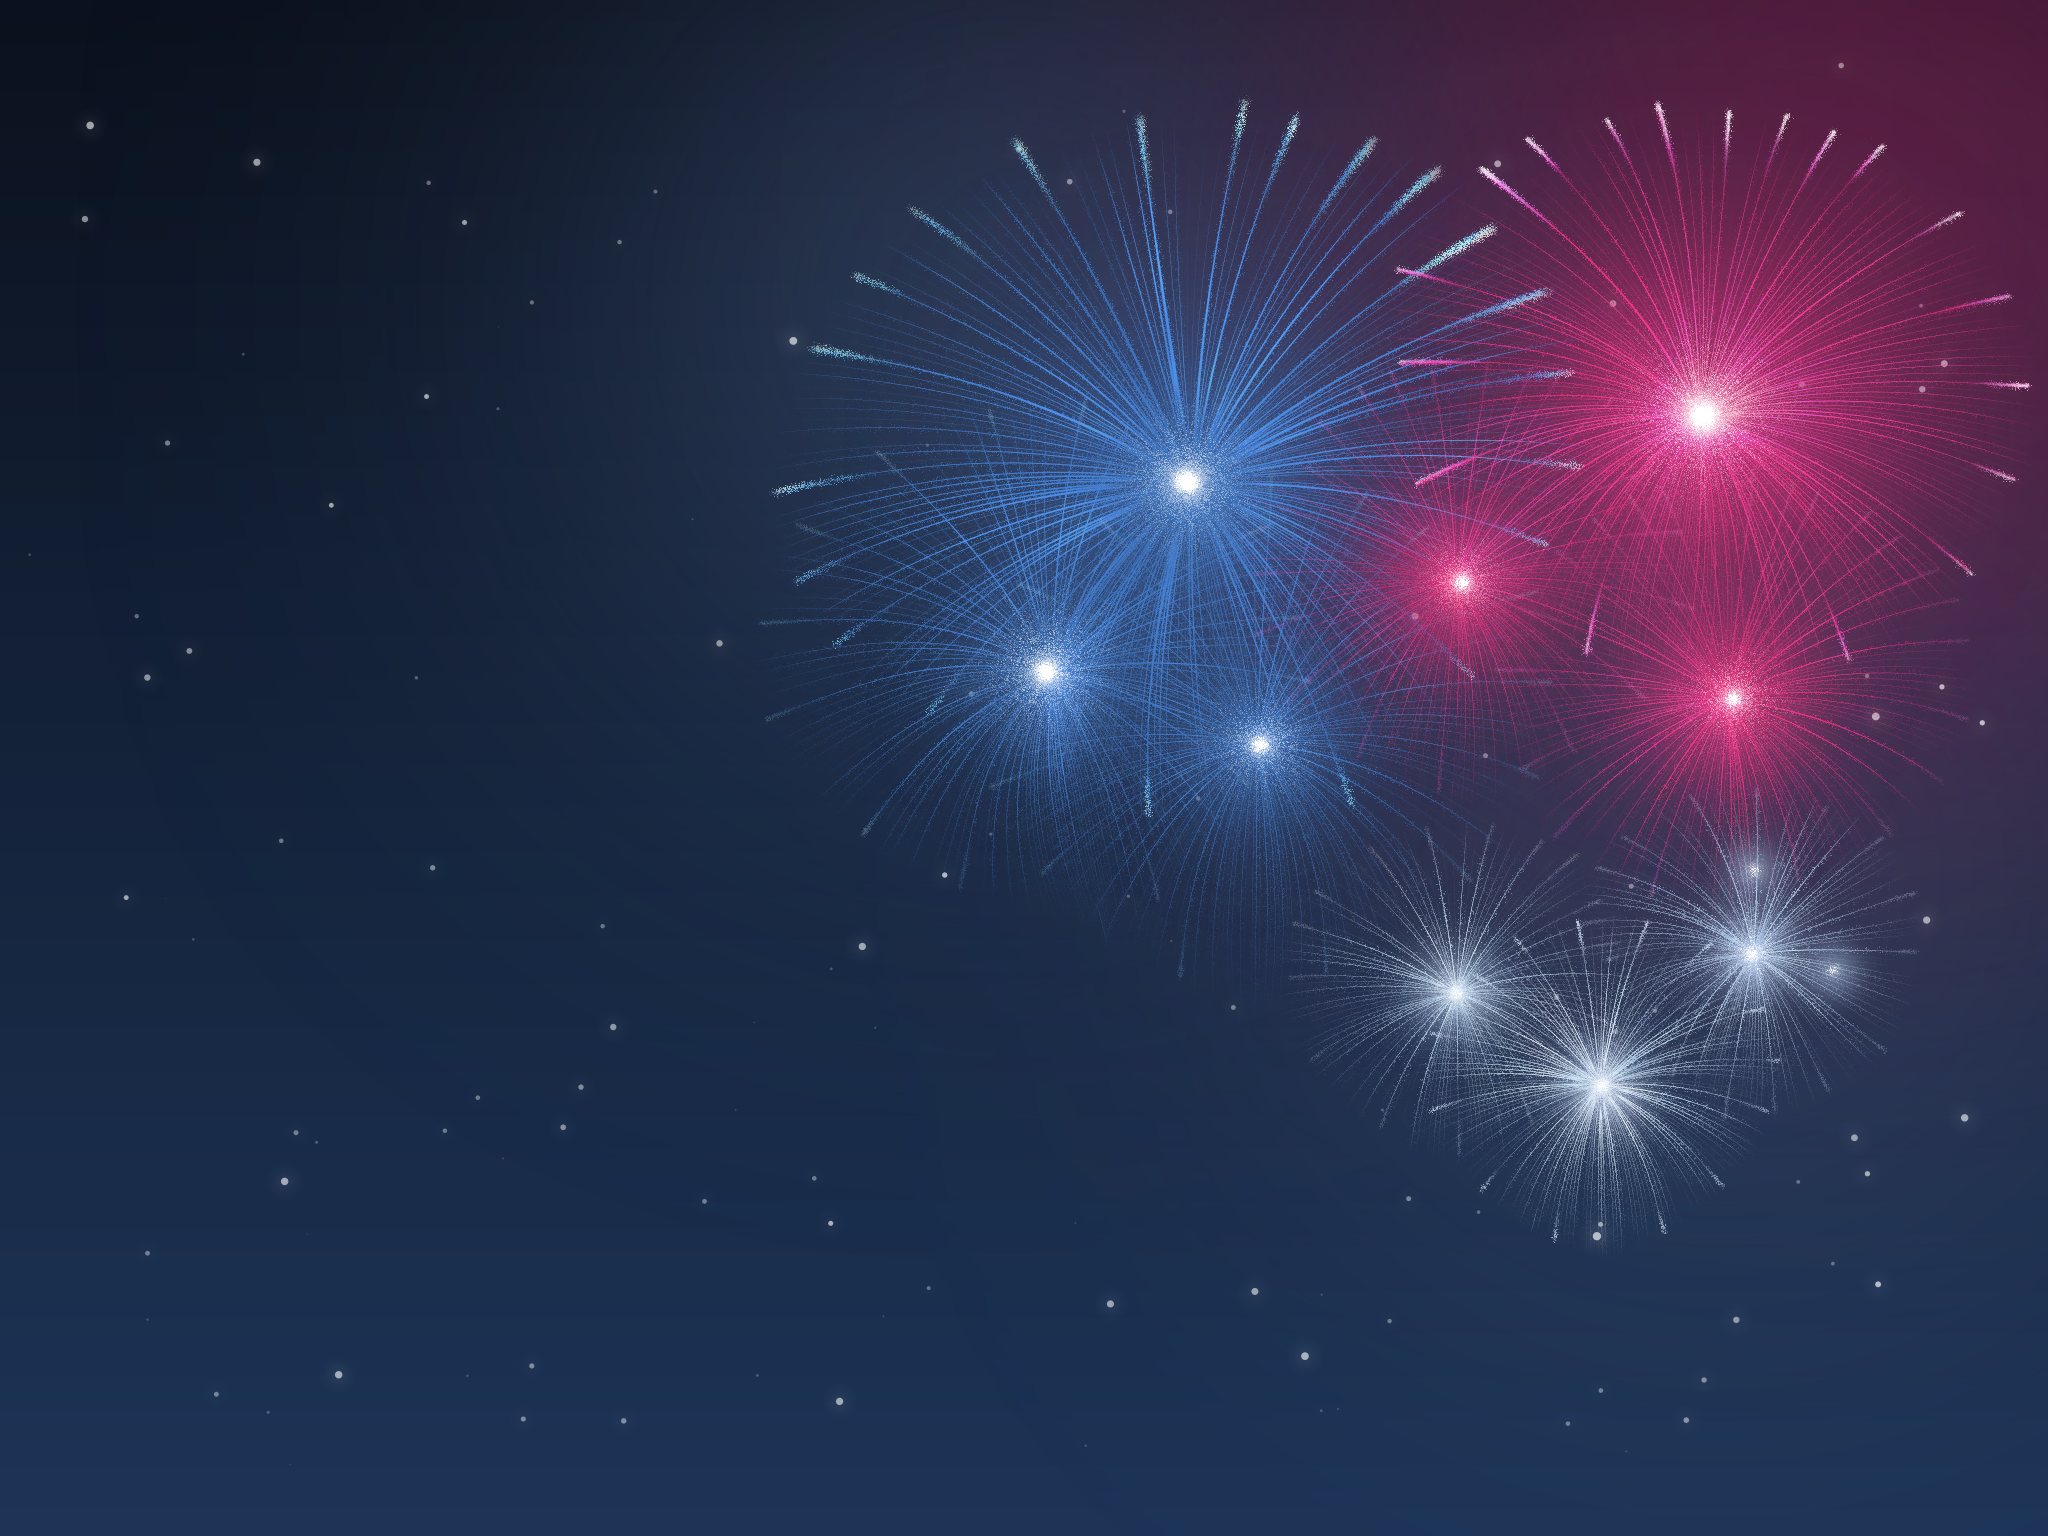 Firework (June 24, 2015, 2.38 Mb) - B.SCB